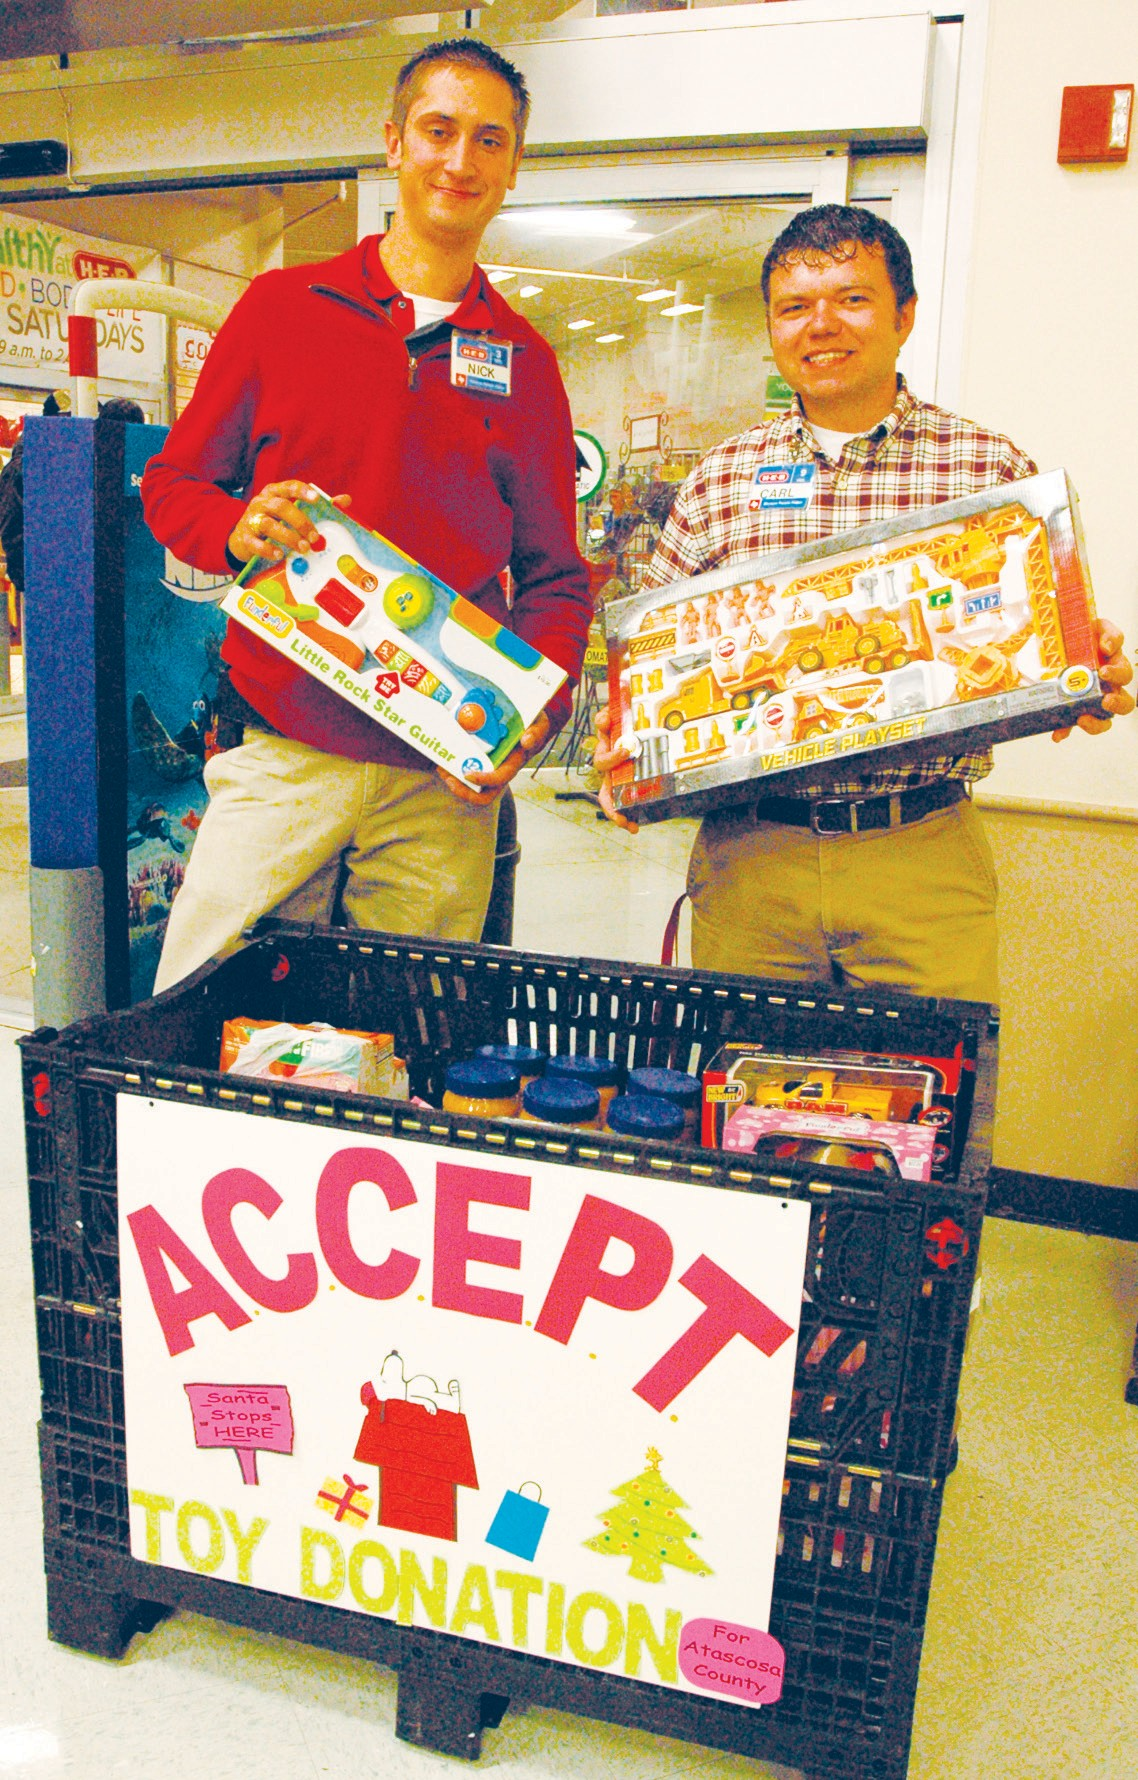 Nick Hudek, HEB Store Director and Carl Banta HEB Central Checkout Manager encourage everyone to donate to ACCEPT this Christmas season. They are accepting toy and food donations at their store located at 219 W. Oaklawn.